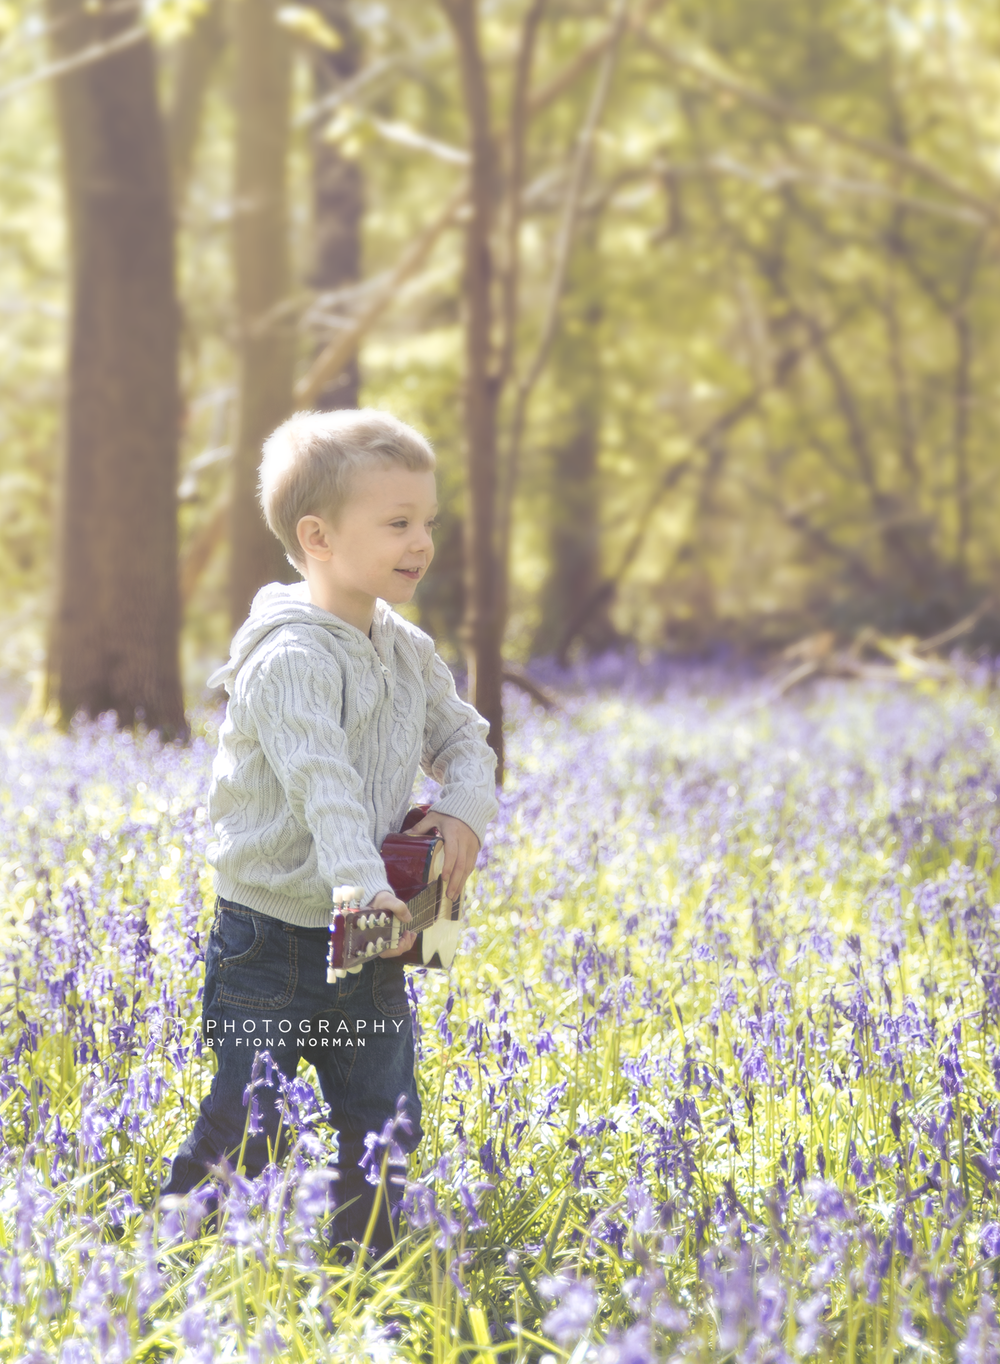 Outdoor bluebell photo shoot